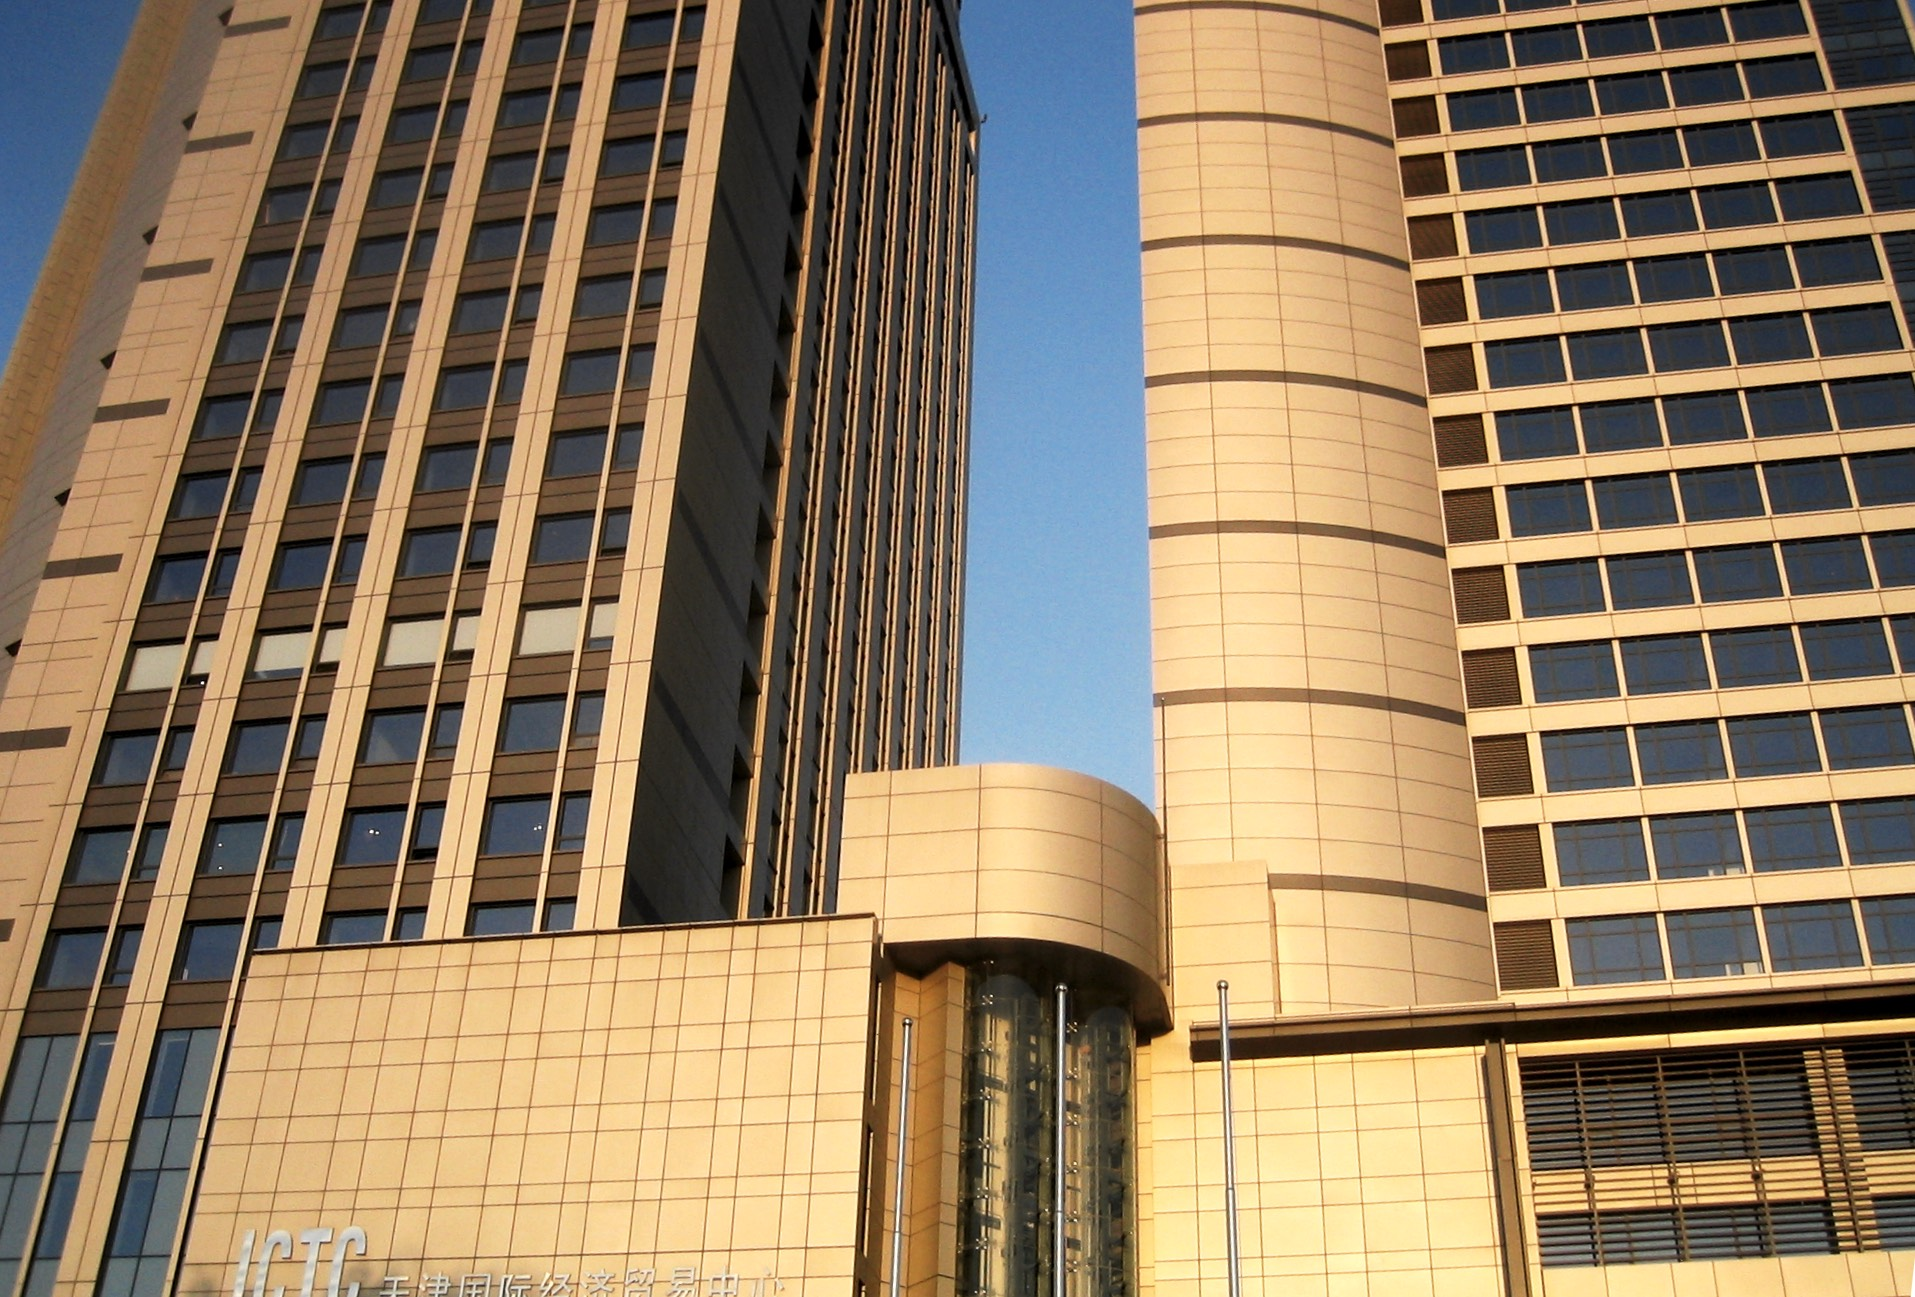 LocatedinTianjin, our China office is in the heart of one ofChina's most important industrial and financial hubs.